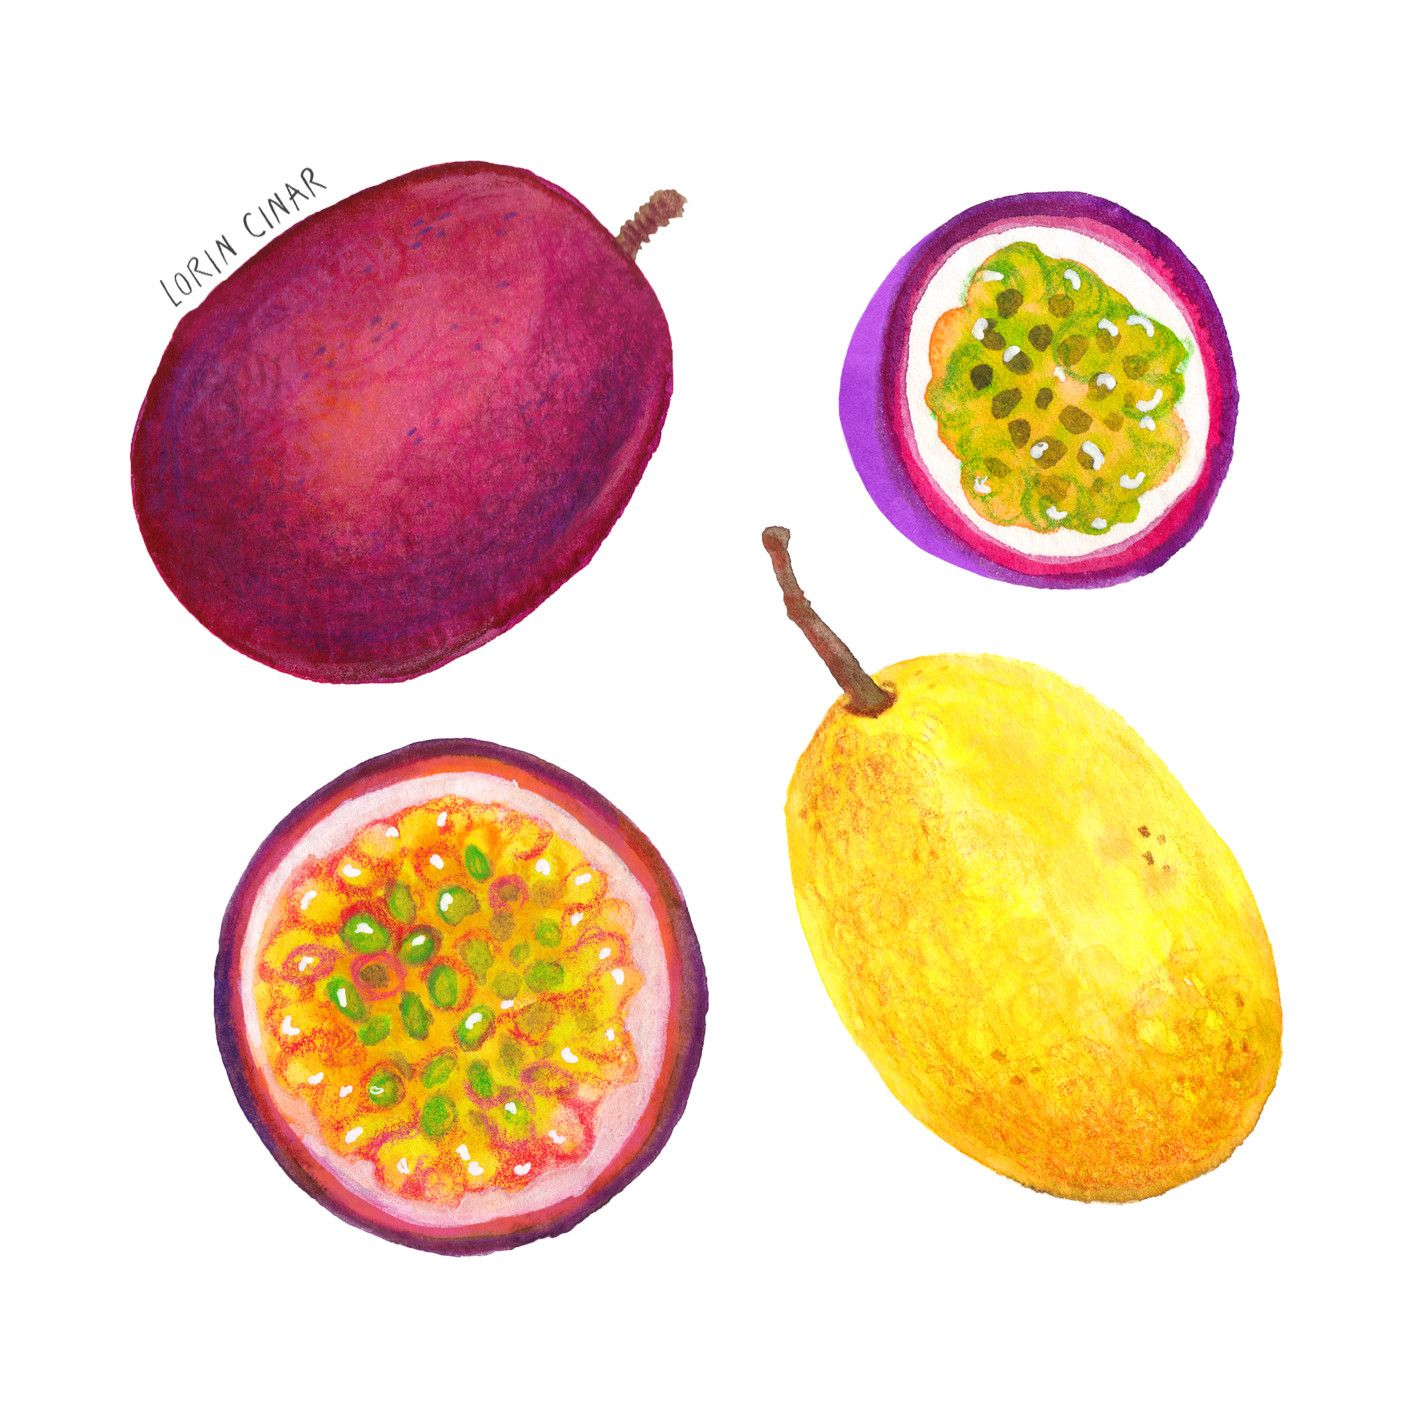 Passion Fruit By Lorin Cinar Food Illustrations Fruit Passion Fruit